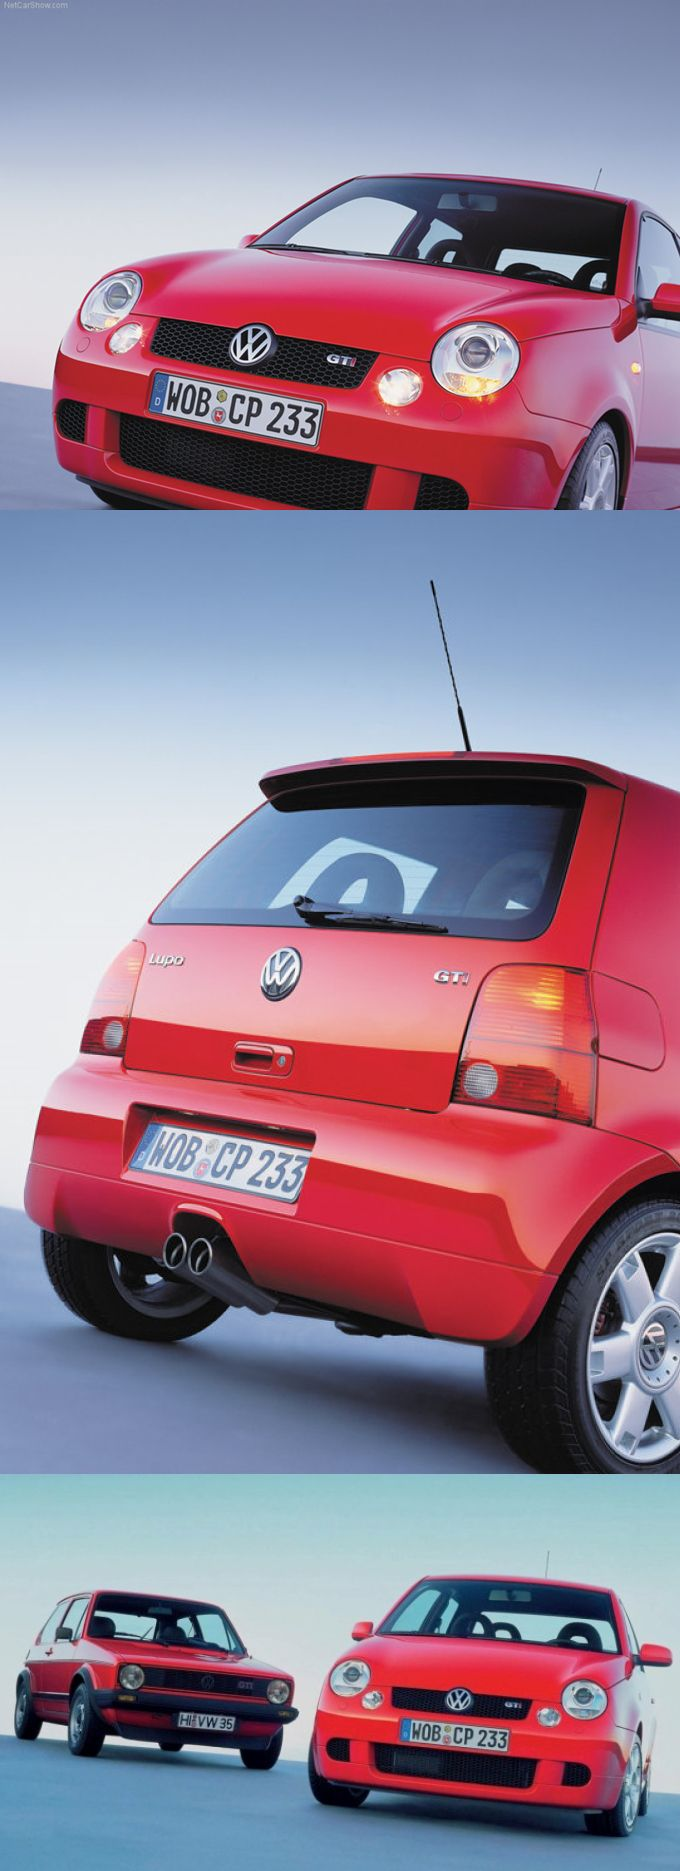 2000 VW Lupo GTi / 123hp / Germany / red